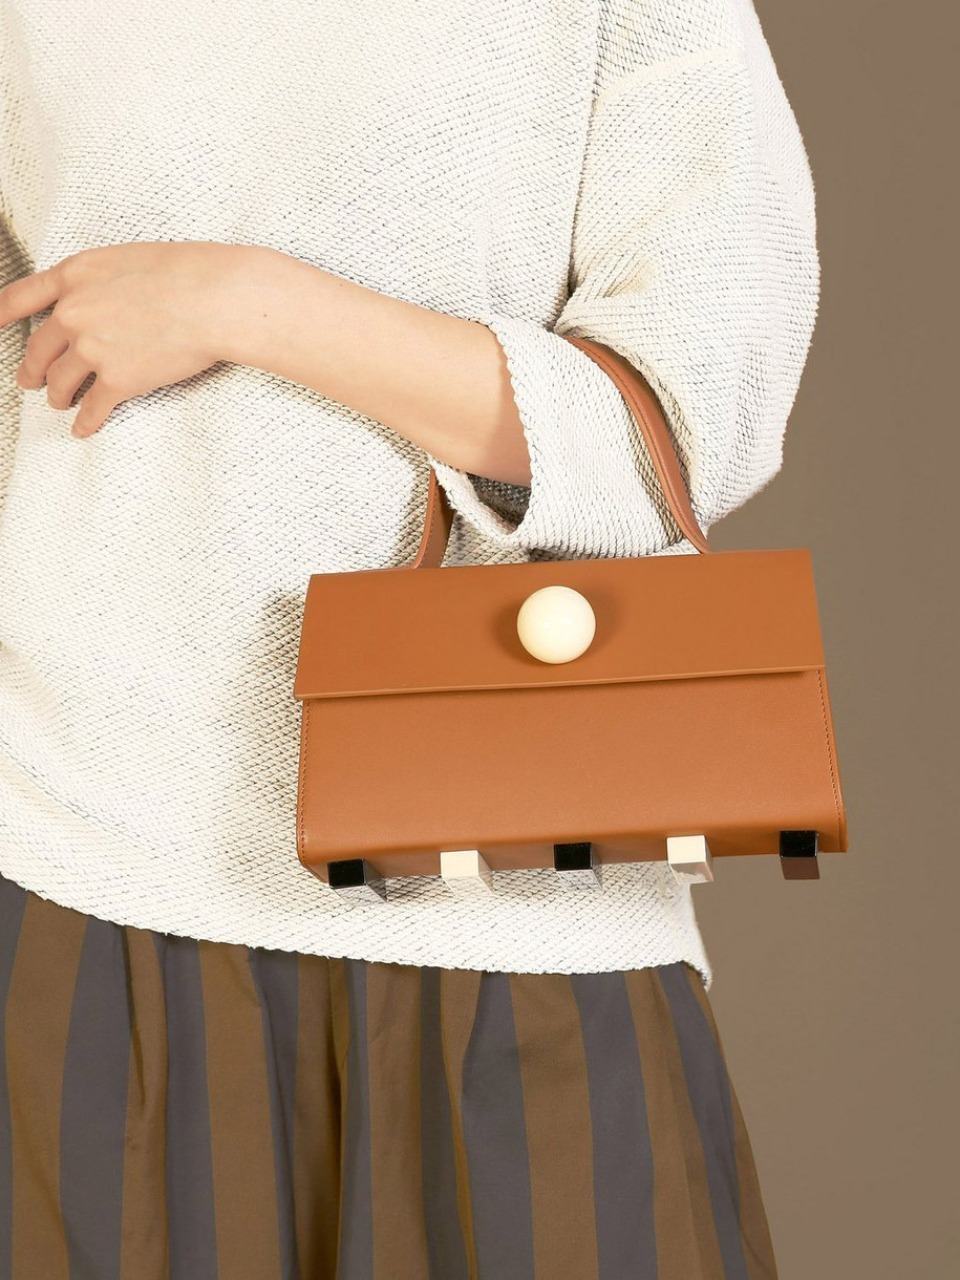 더 조엘르 | MatterMatters - [MATTER MATTERS] MINI TRAPEZOID SATCHEL BAG • BROWN WITH STRAP